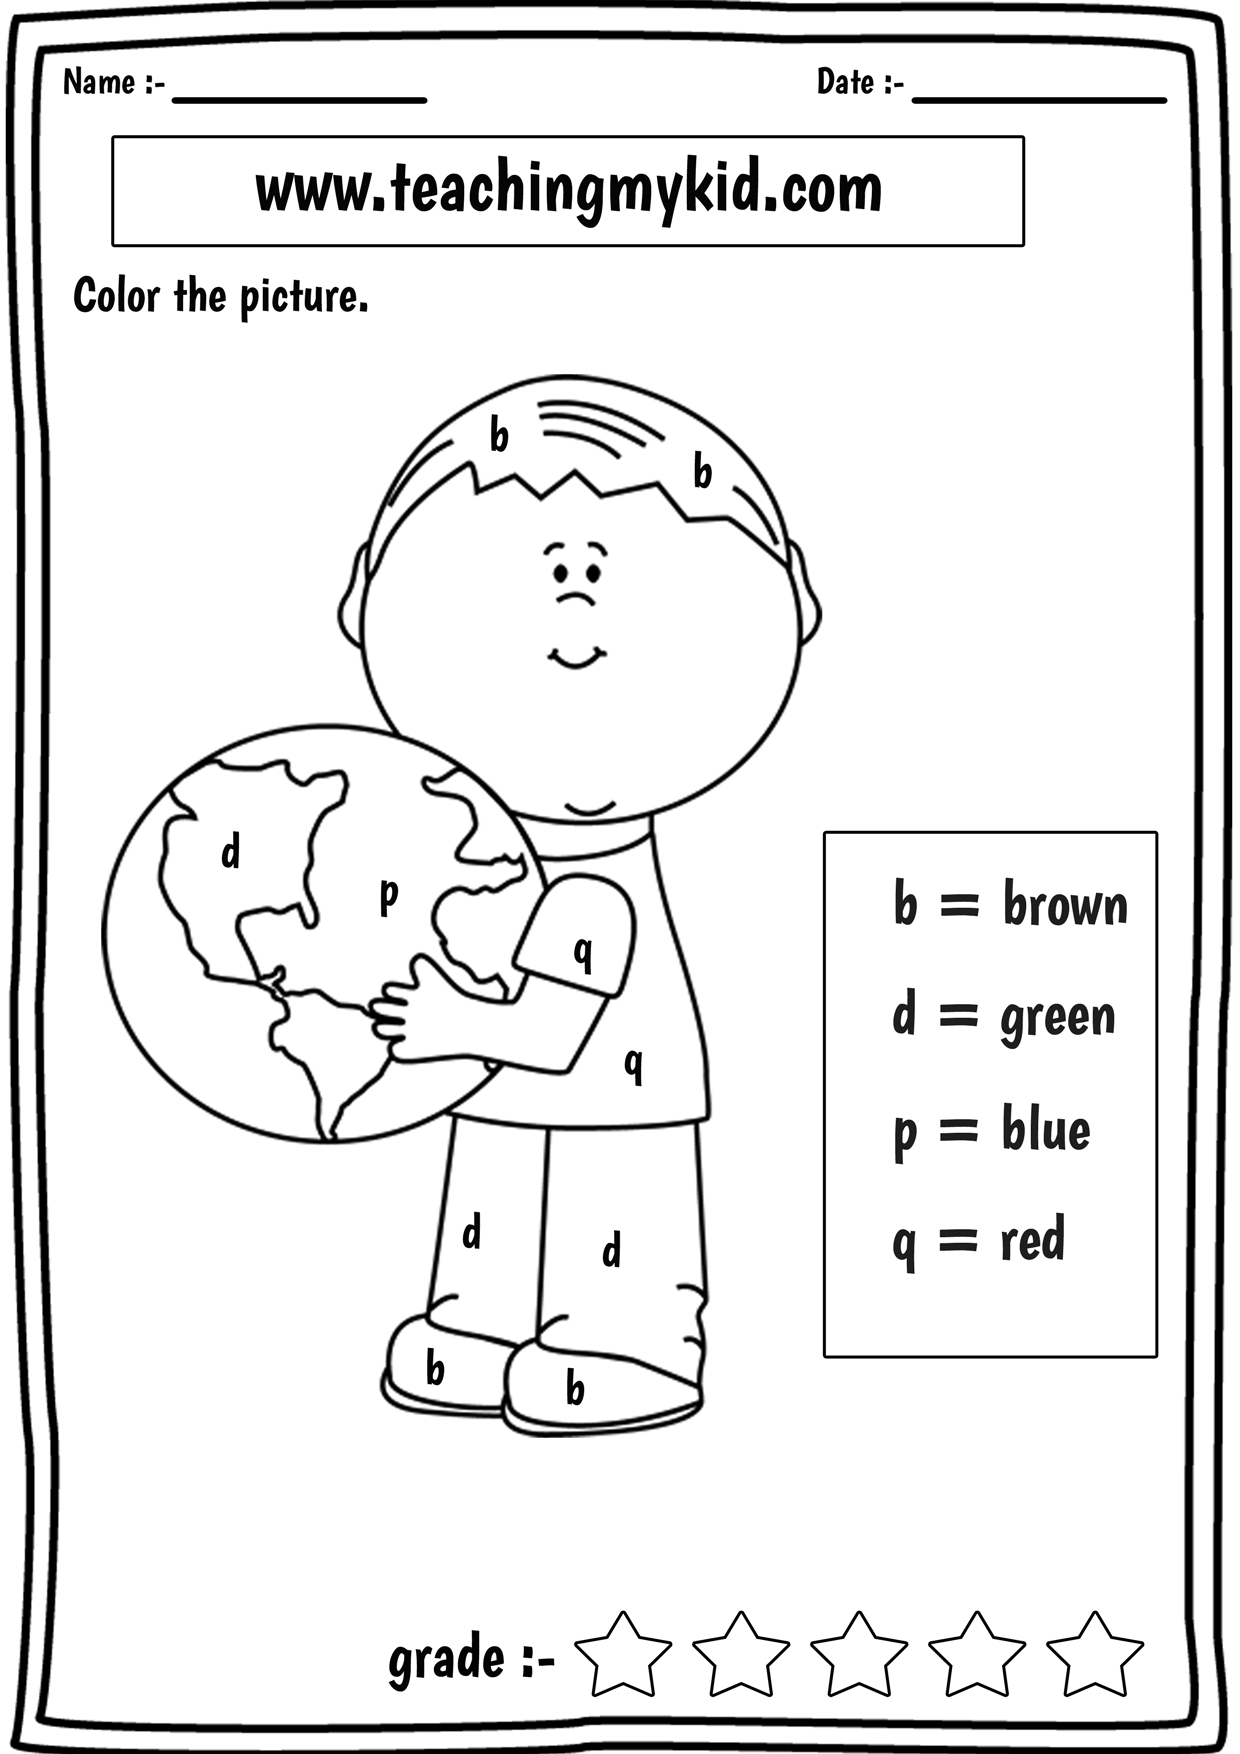 Dyslexia Pages Confusing Letters B D P And Q Kindergarten Learning English Worksheets For Kids Learning Letters [ 1754 x 1240 Pixel ]